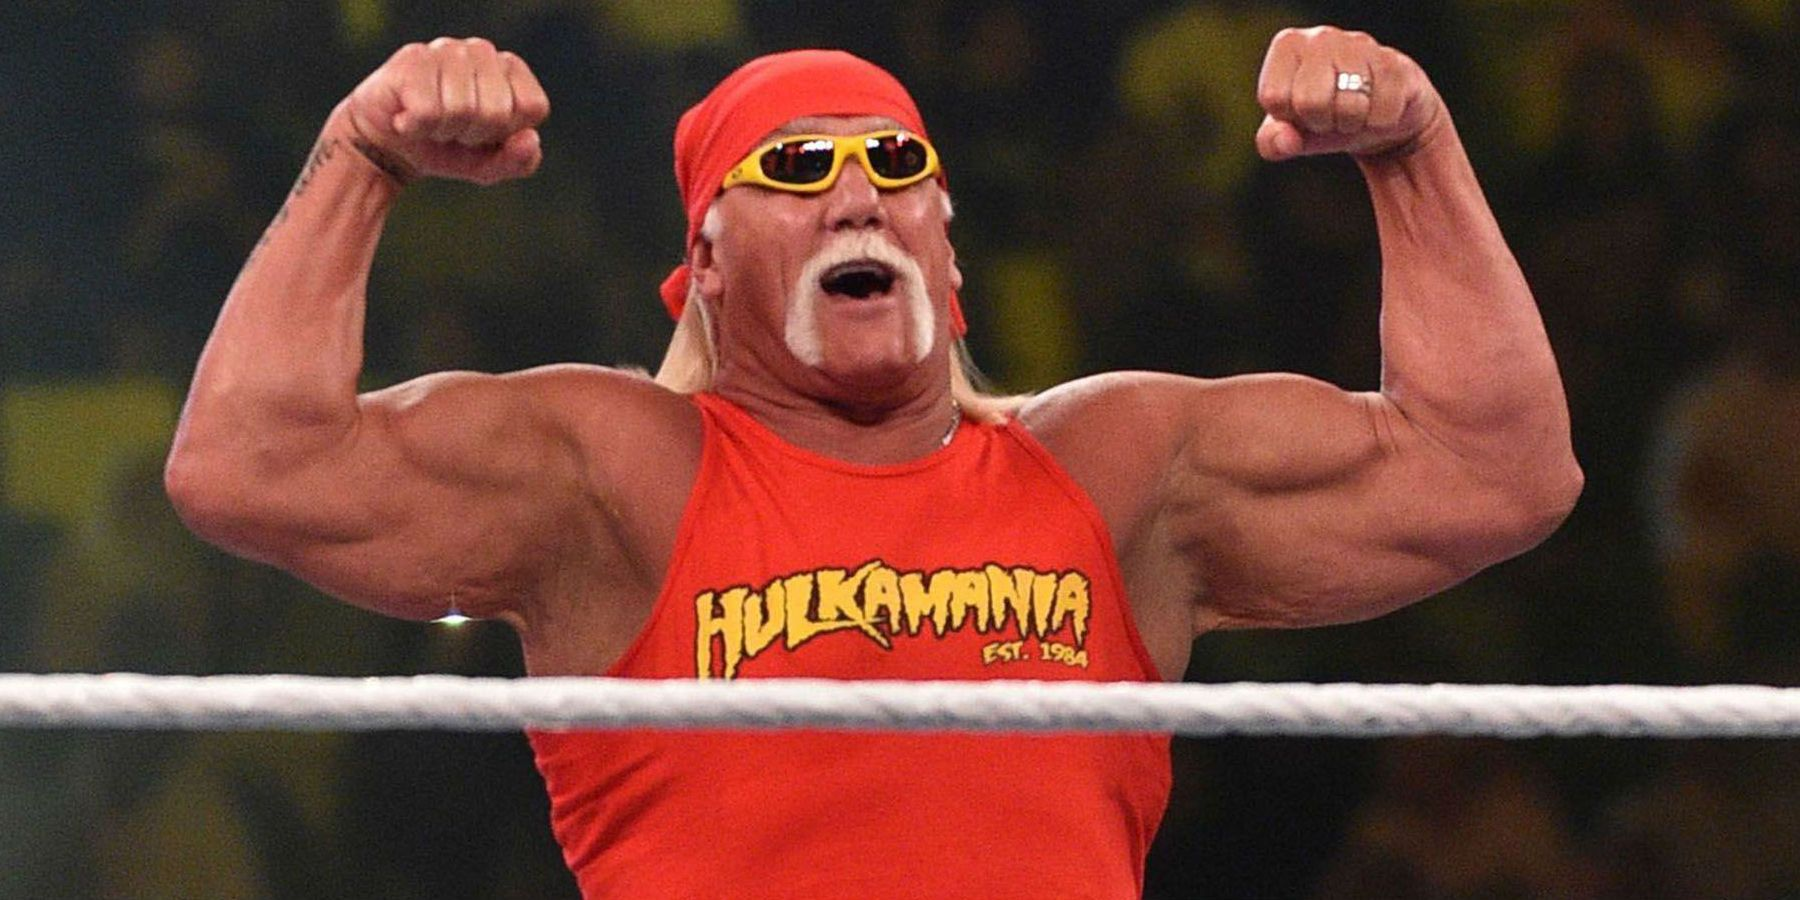 Hulk Hogan Wants To Return For One More WWE Match At